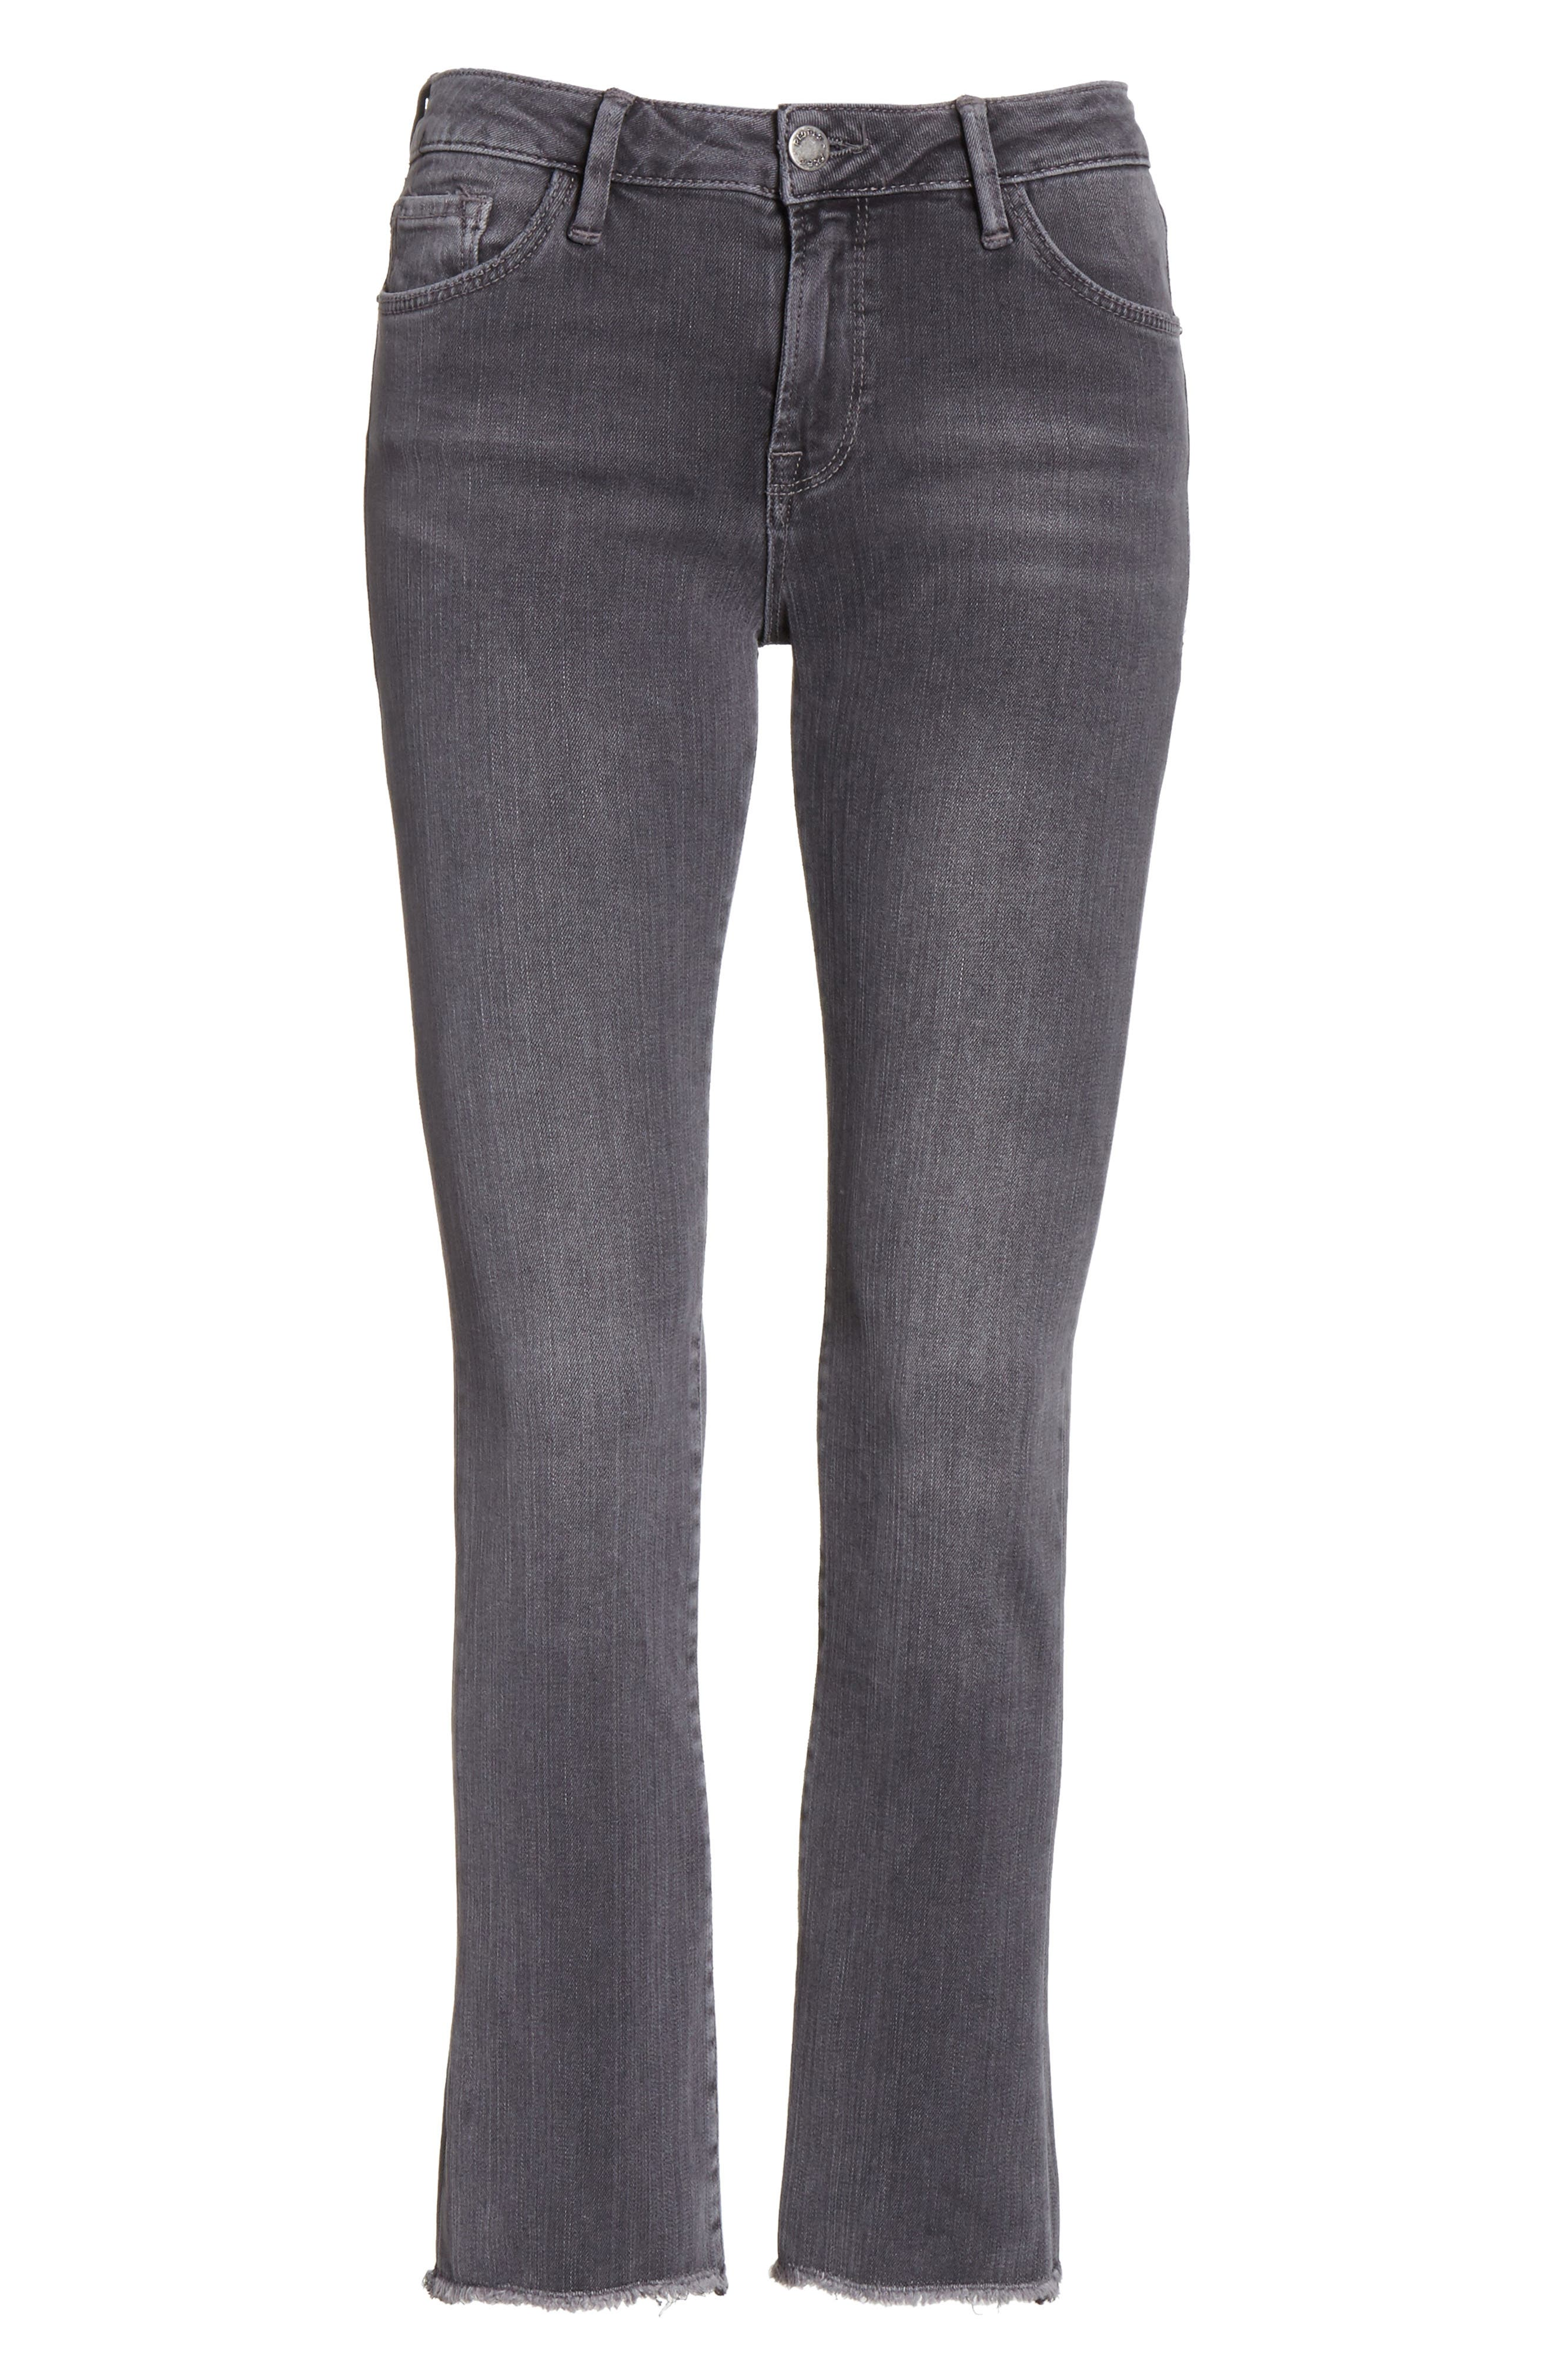 FREE PEOPLE,                             Crop Straight Leg Jeans,                             Alternate thumbnail 6, color,                             001